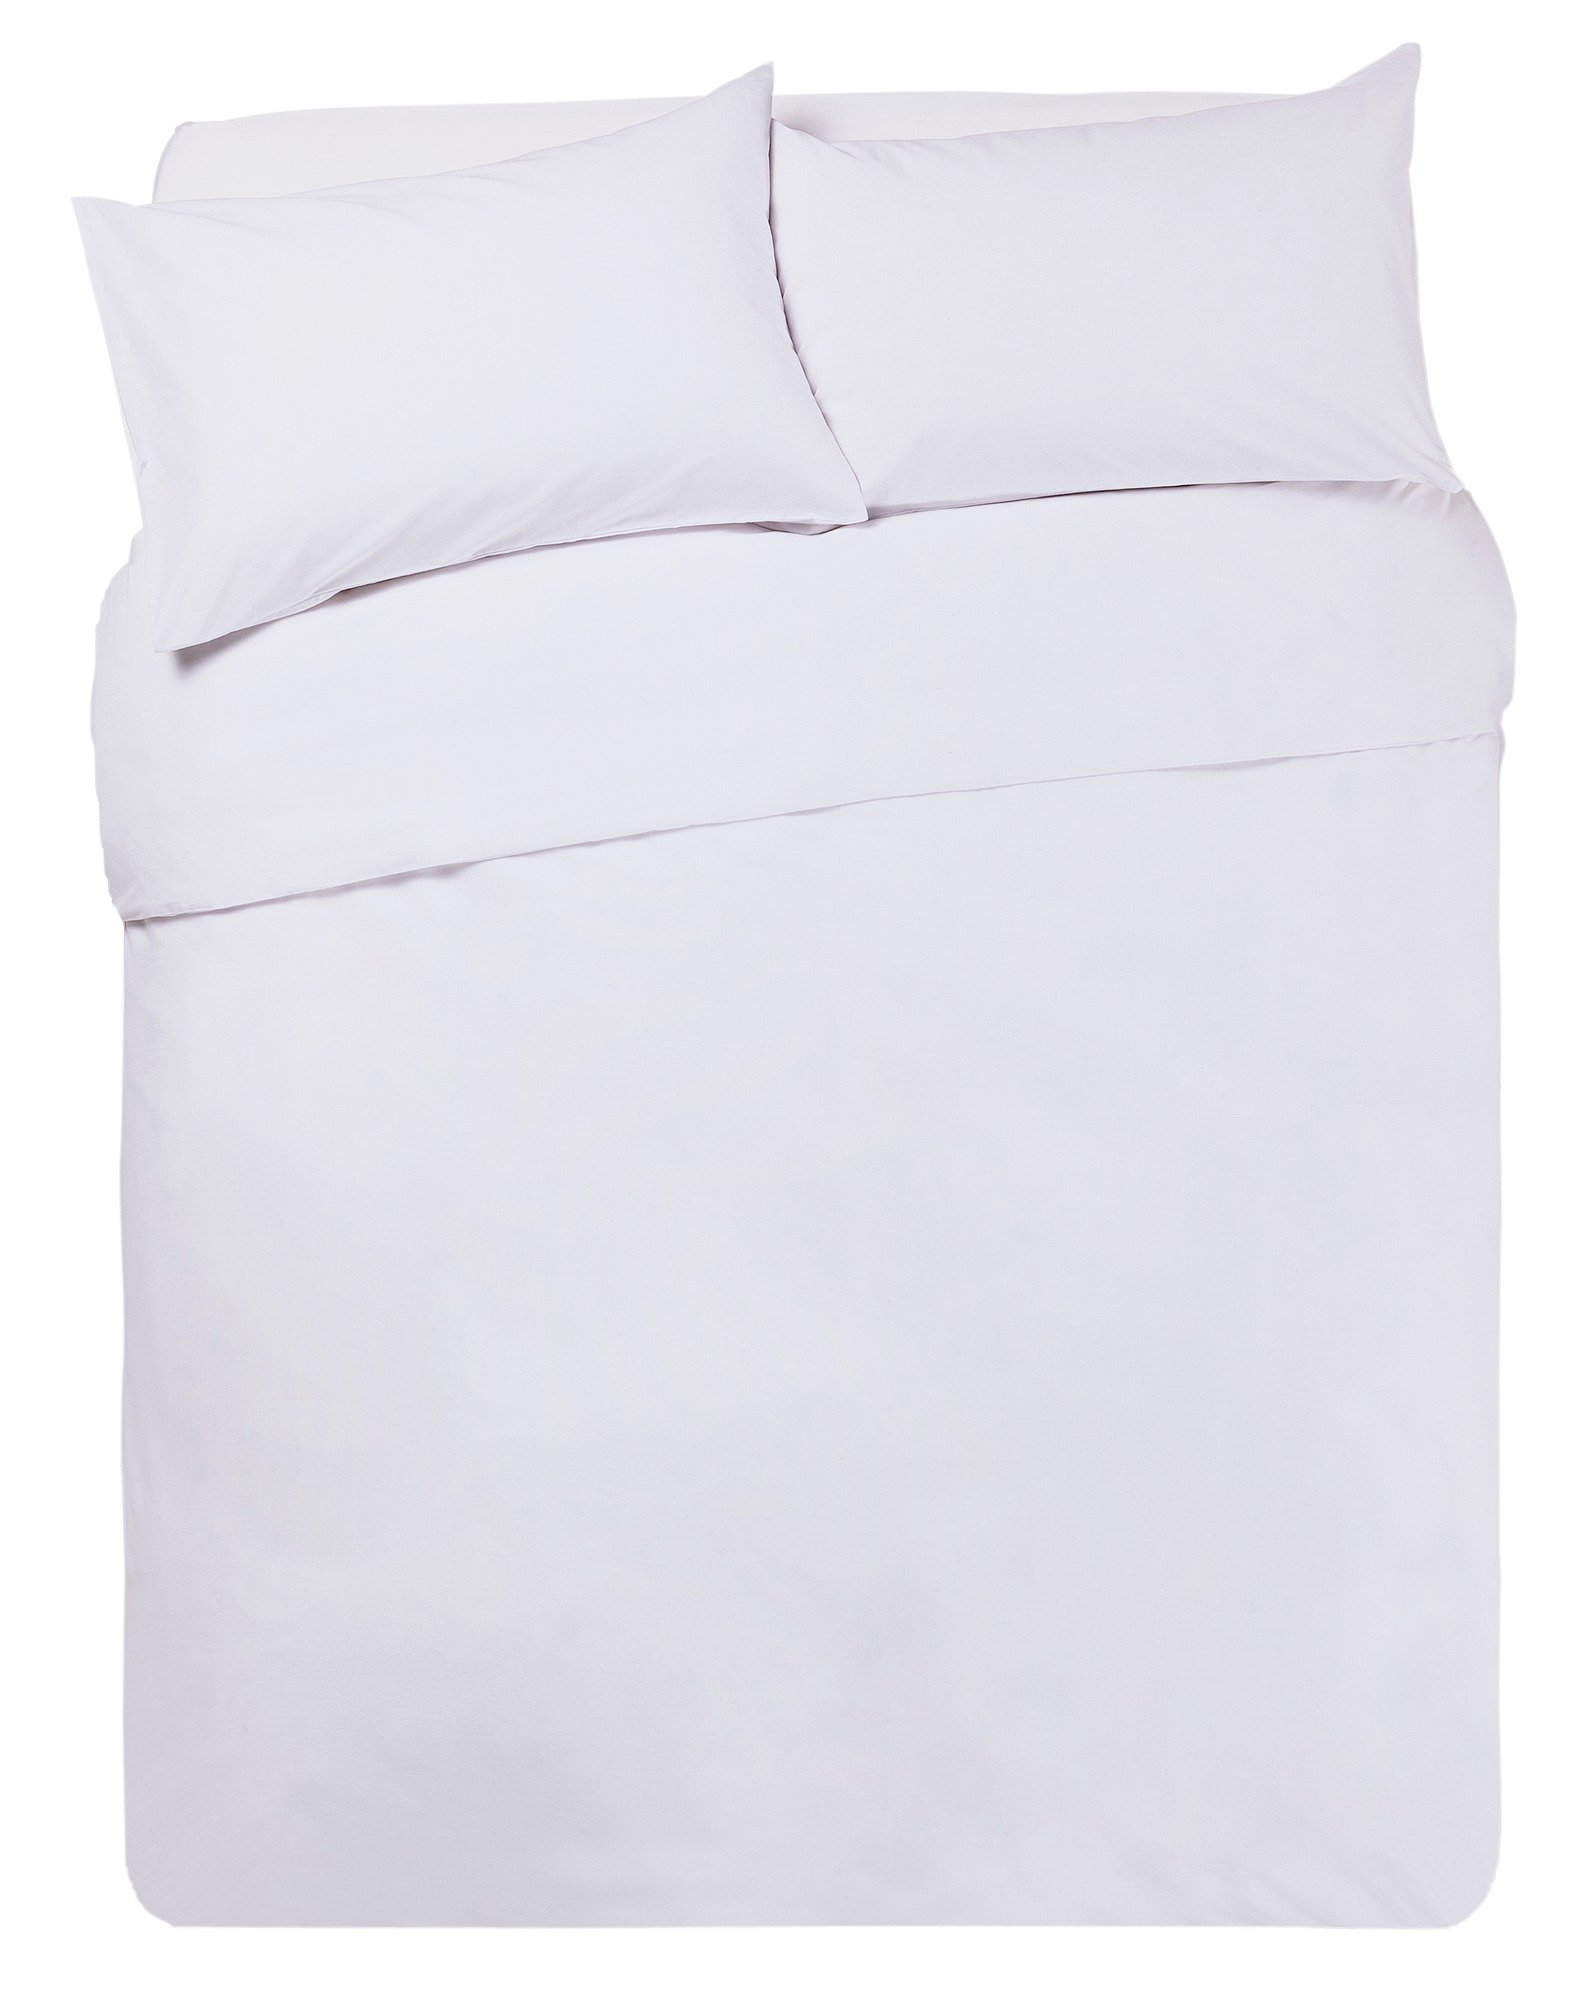 Argos Home Super White Bedding Set - Superking